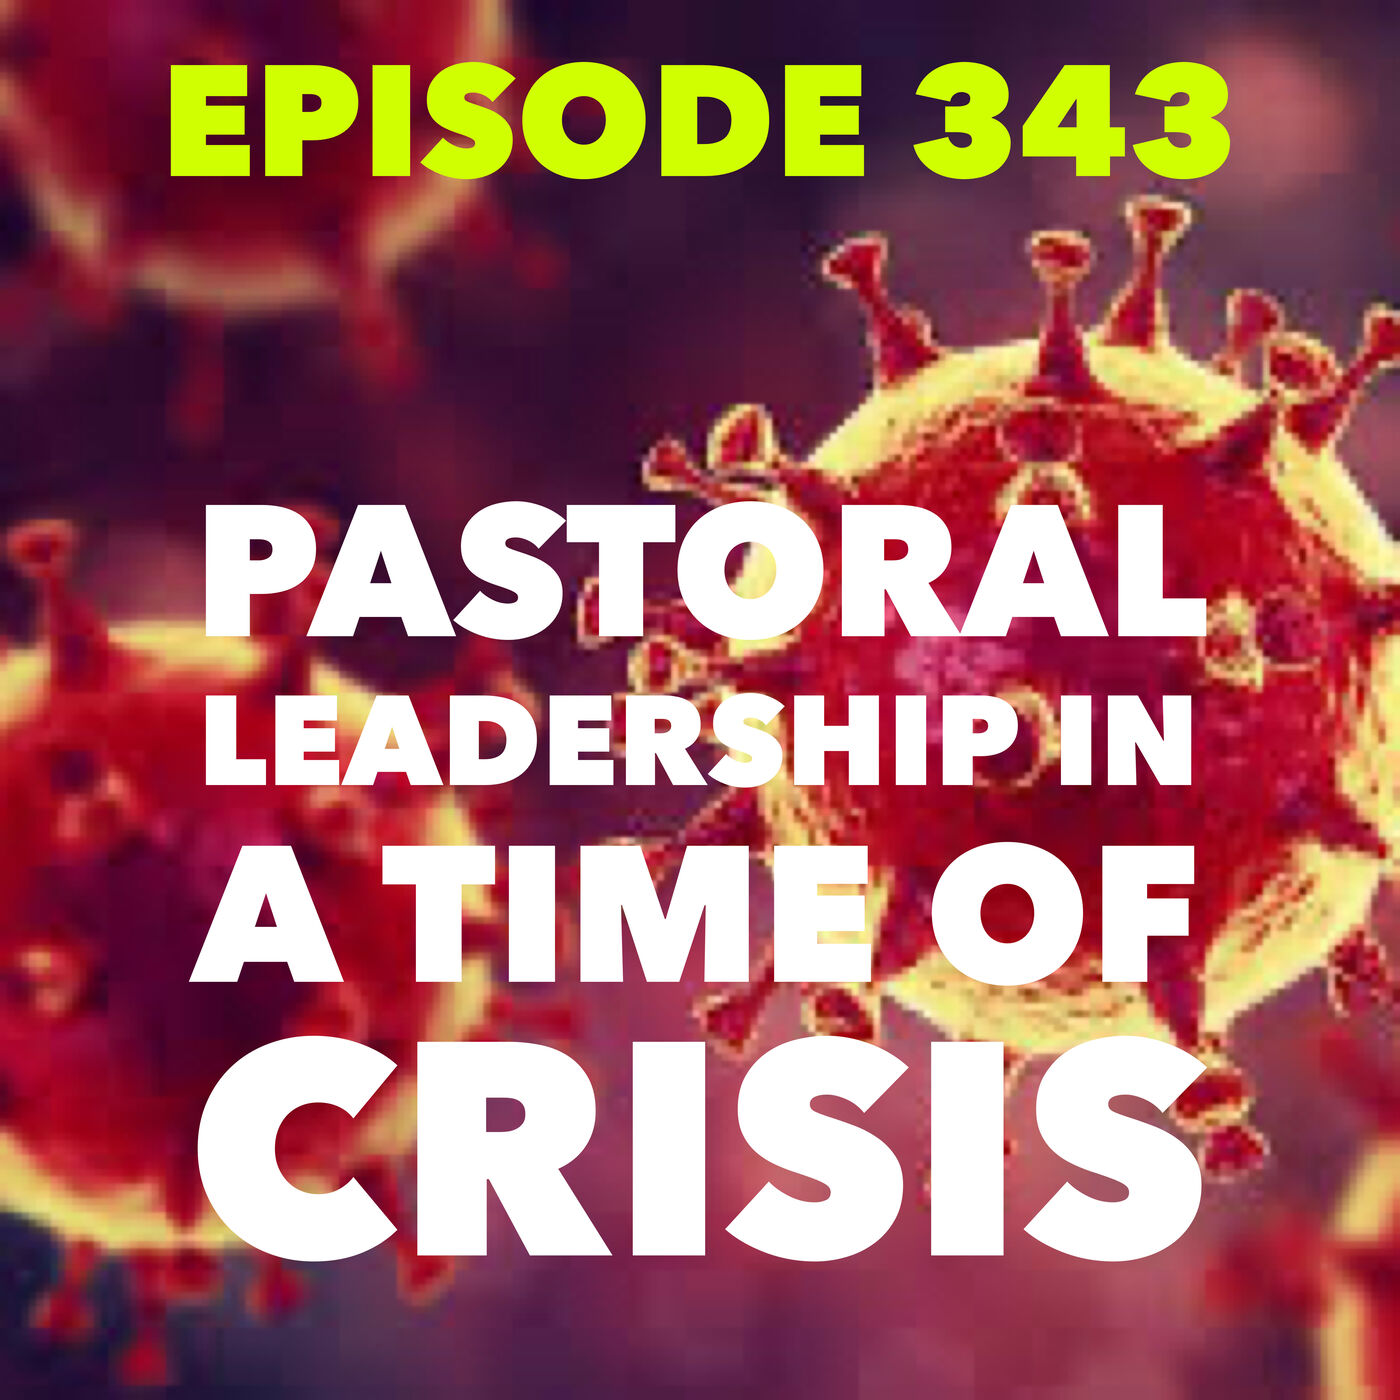 Episode 343 - Pastoral Leadership in a Time of Crisis